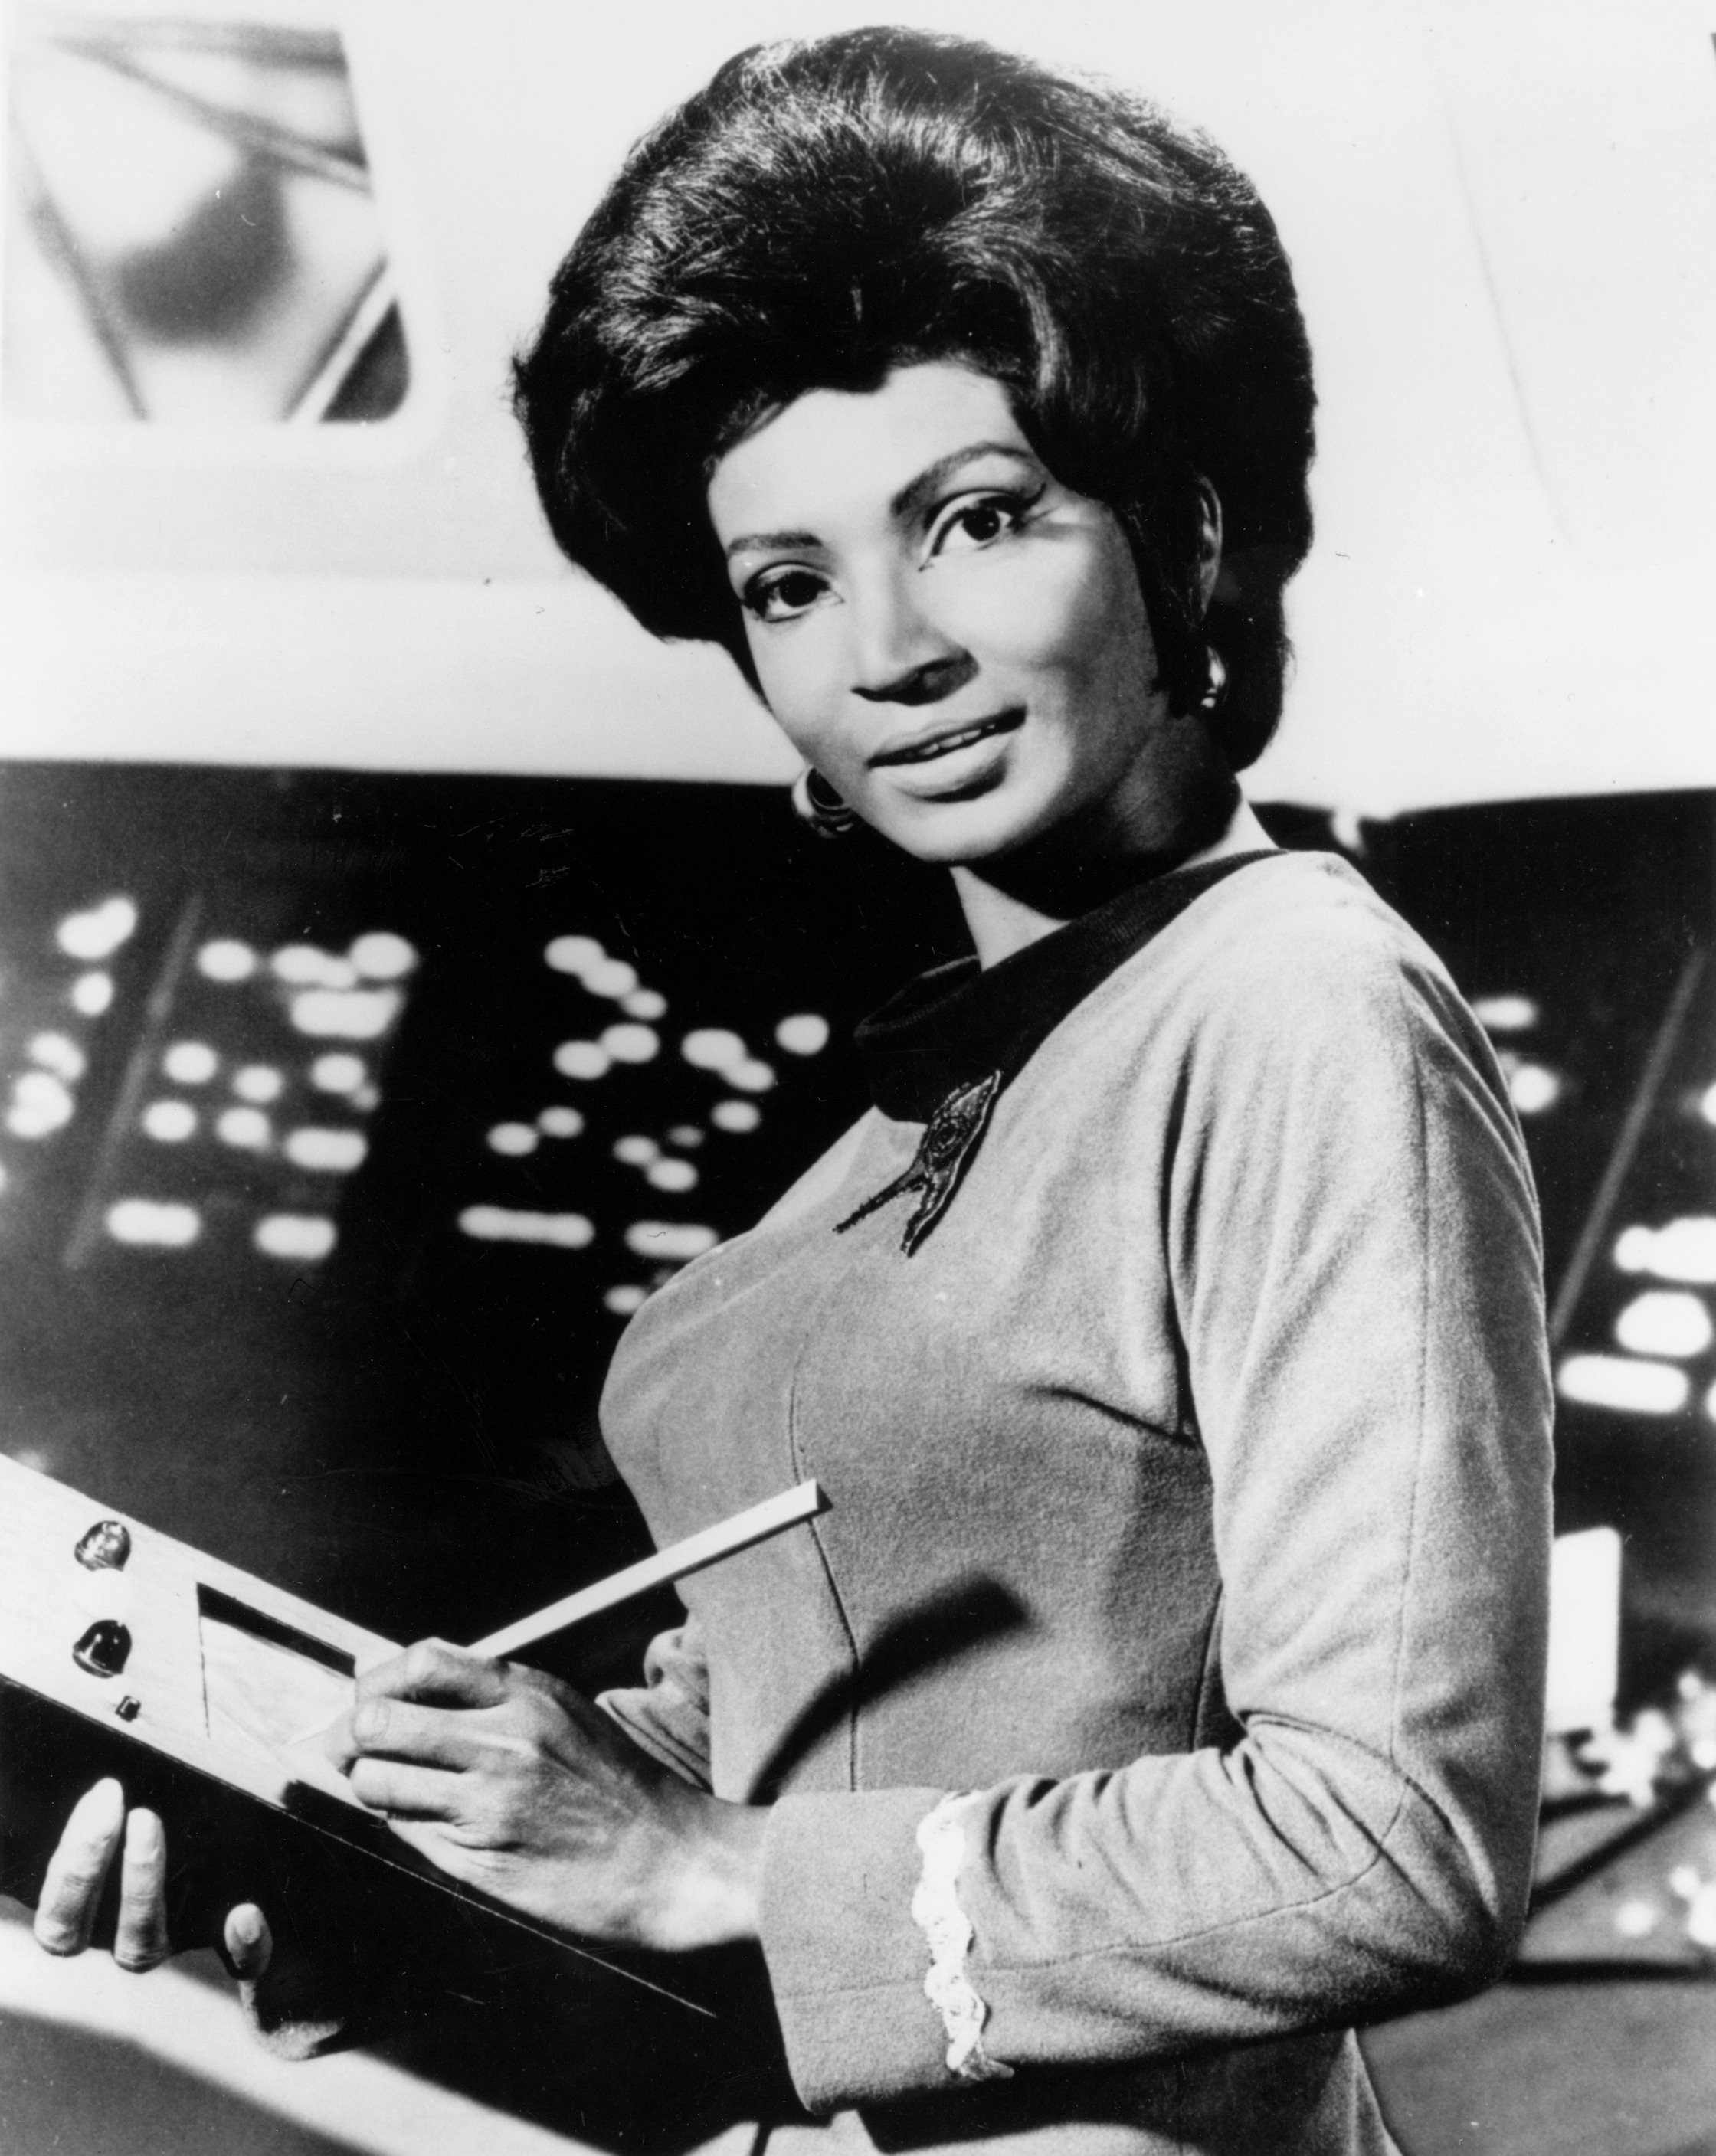 Black and White photo of Nichelle Nichols holding an astronomical device